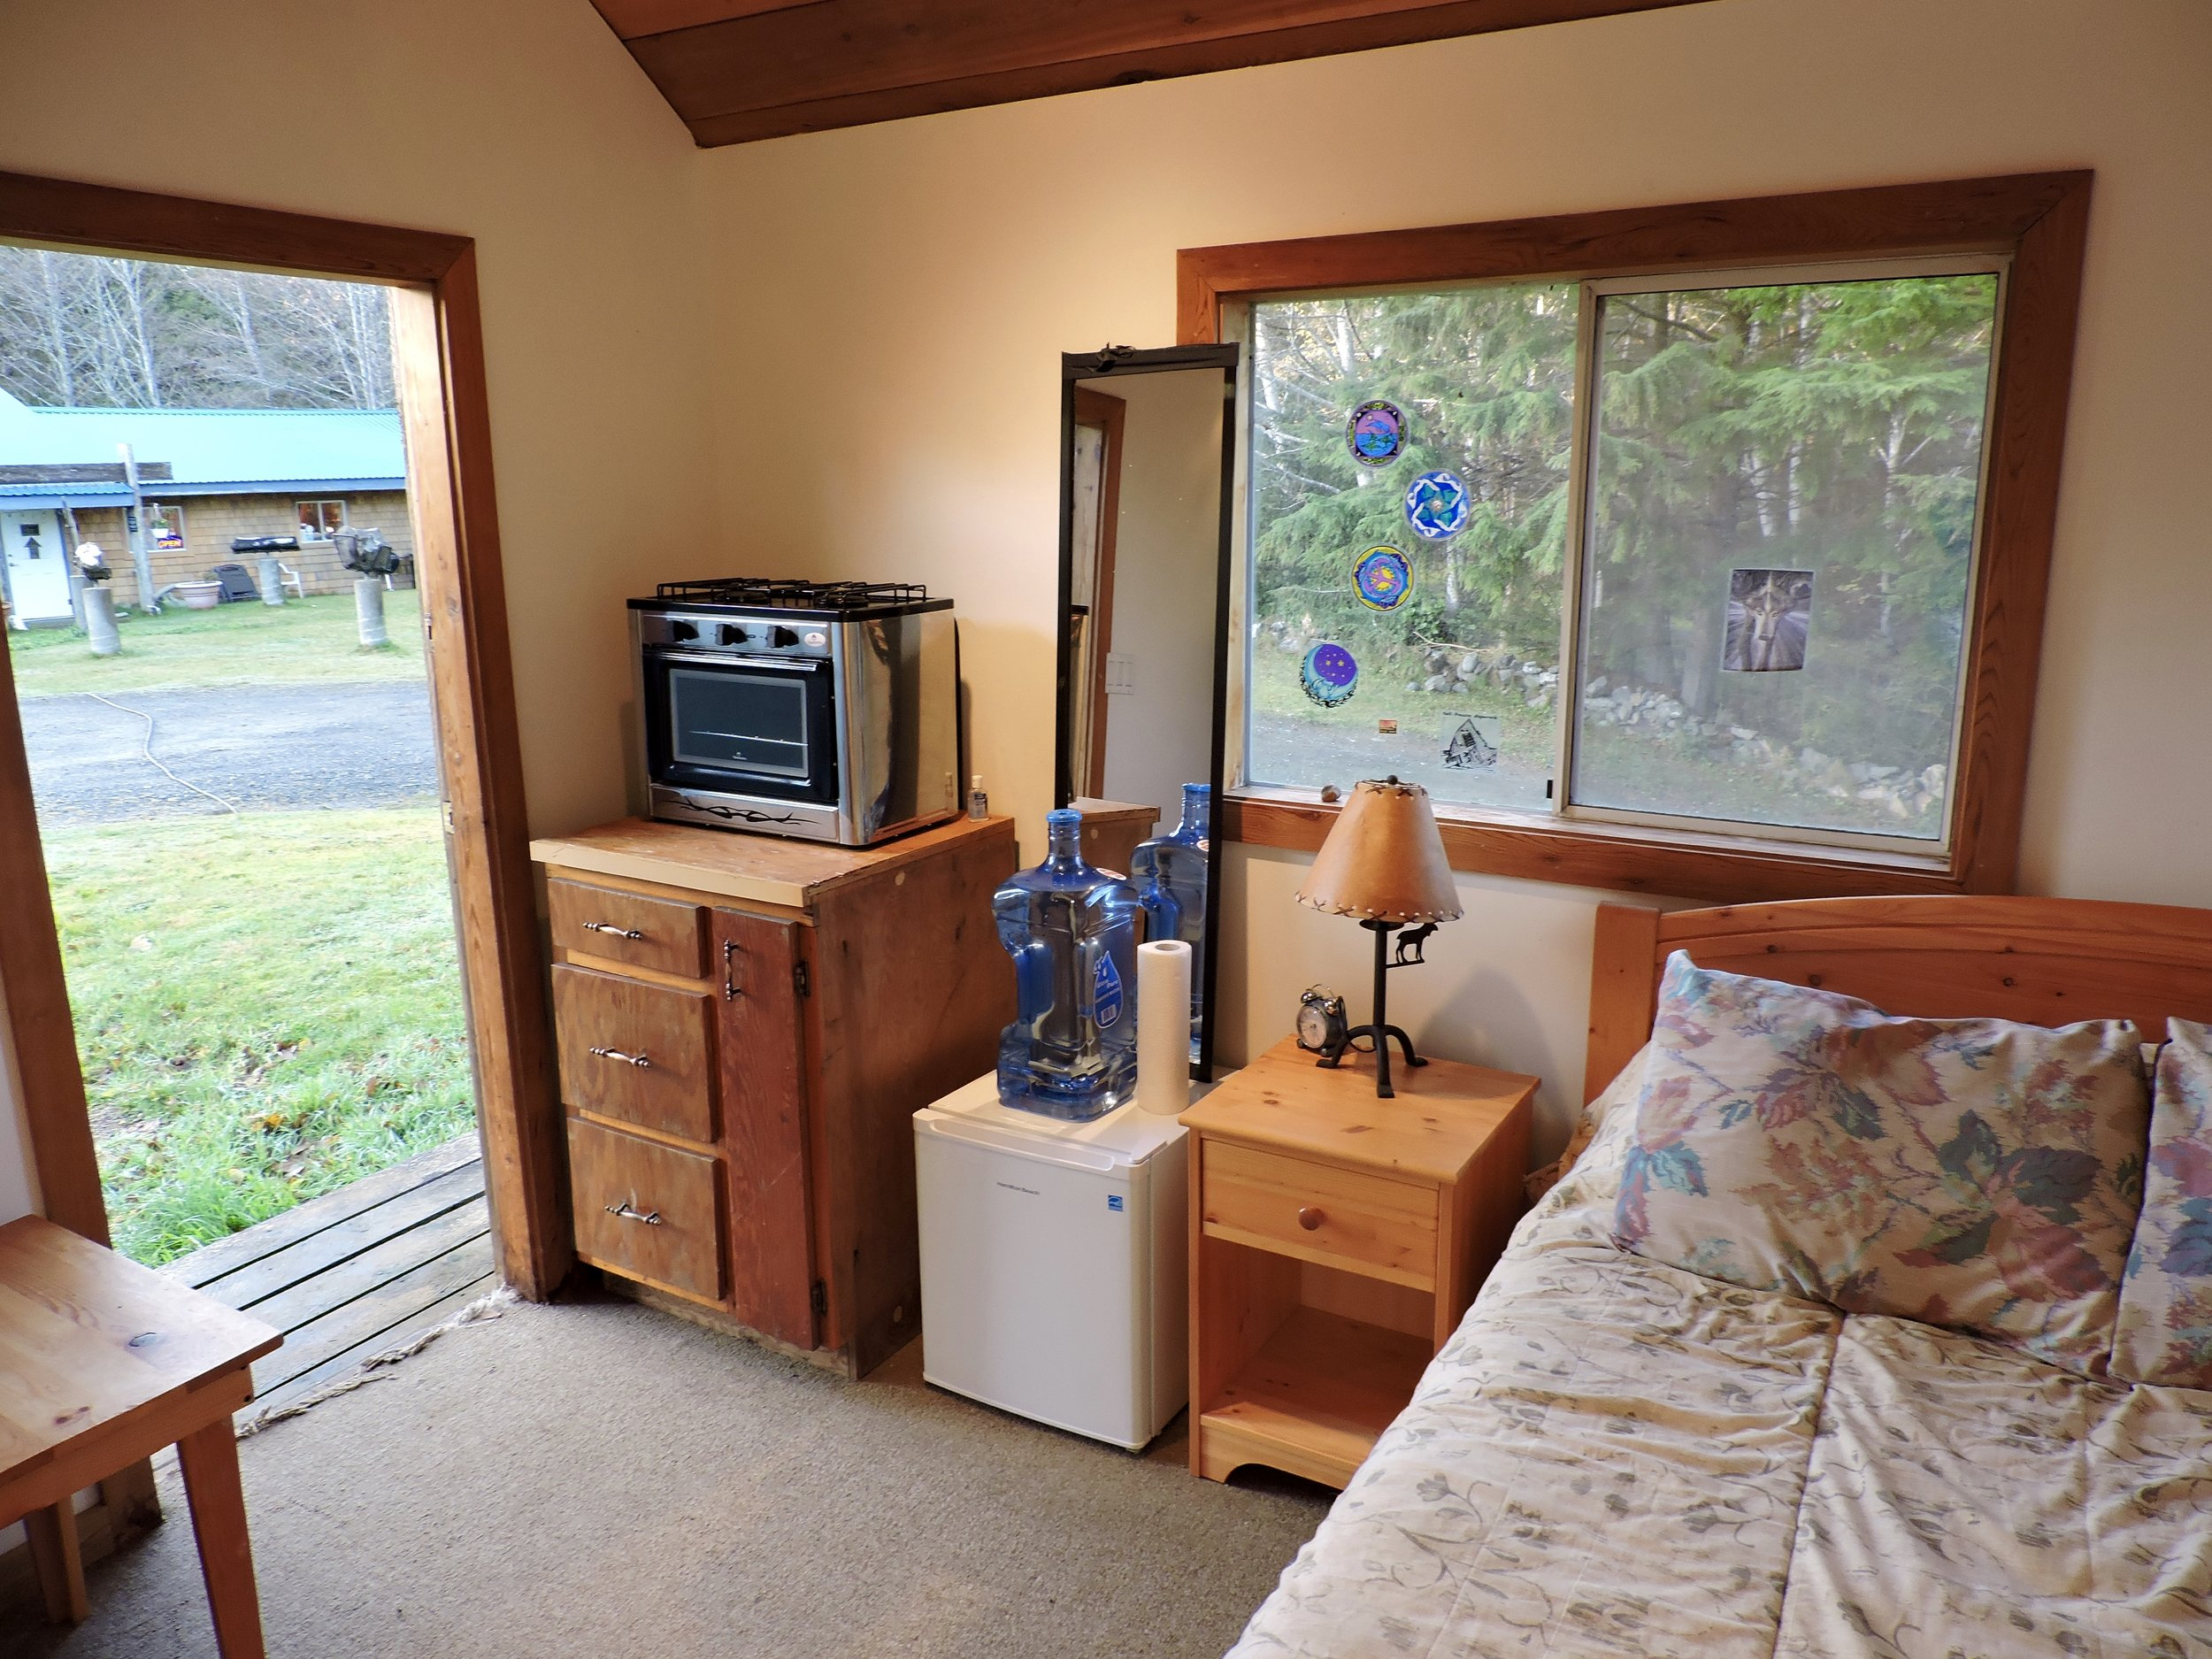 A rustic cabin rental is also available with queen sized bed, mini fridge & propane stove